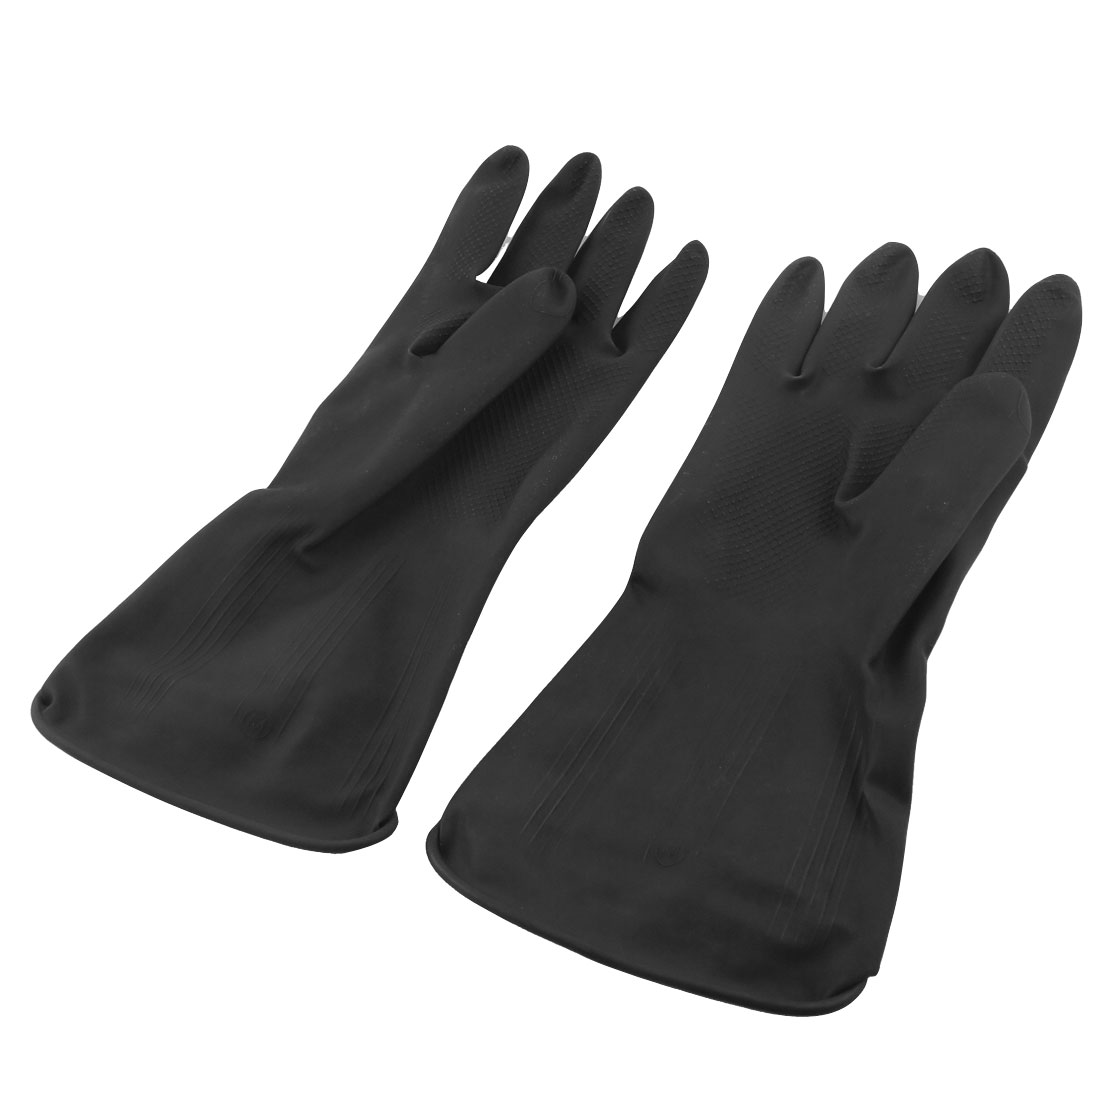 "Industry Household 11"" Length Black Latex Working Gloves"